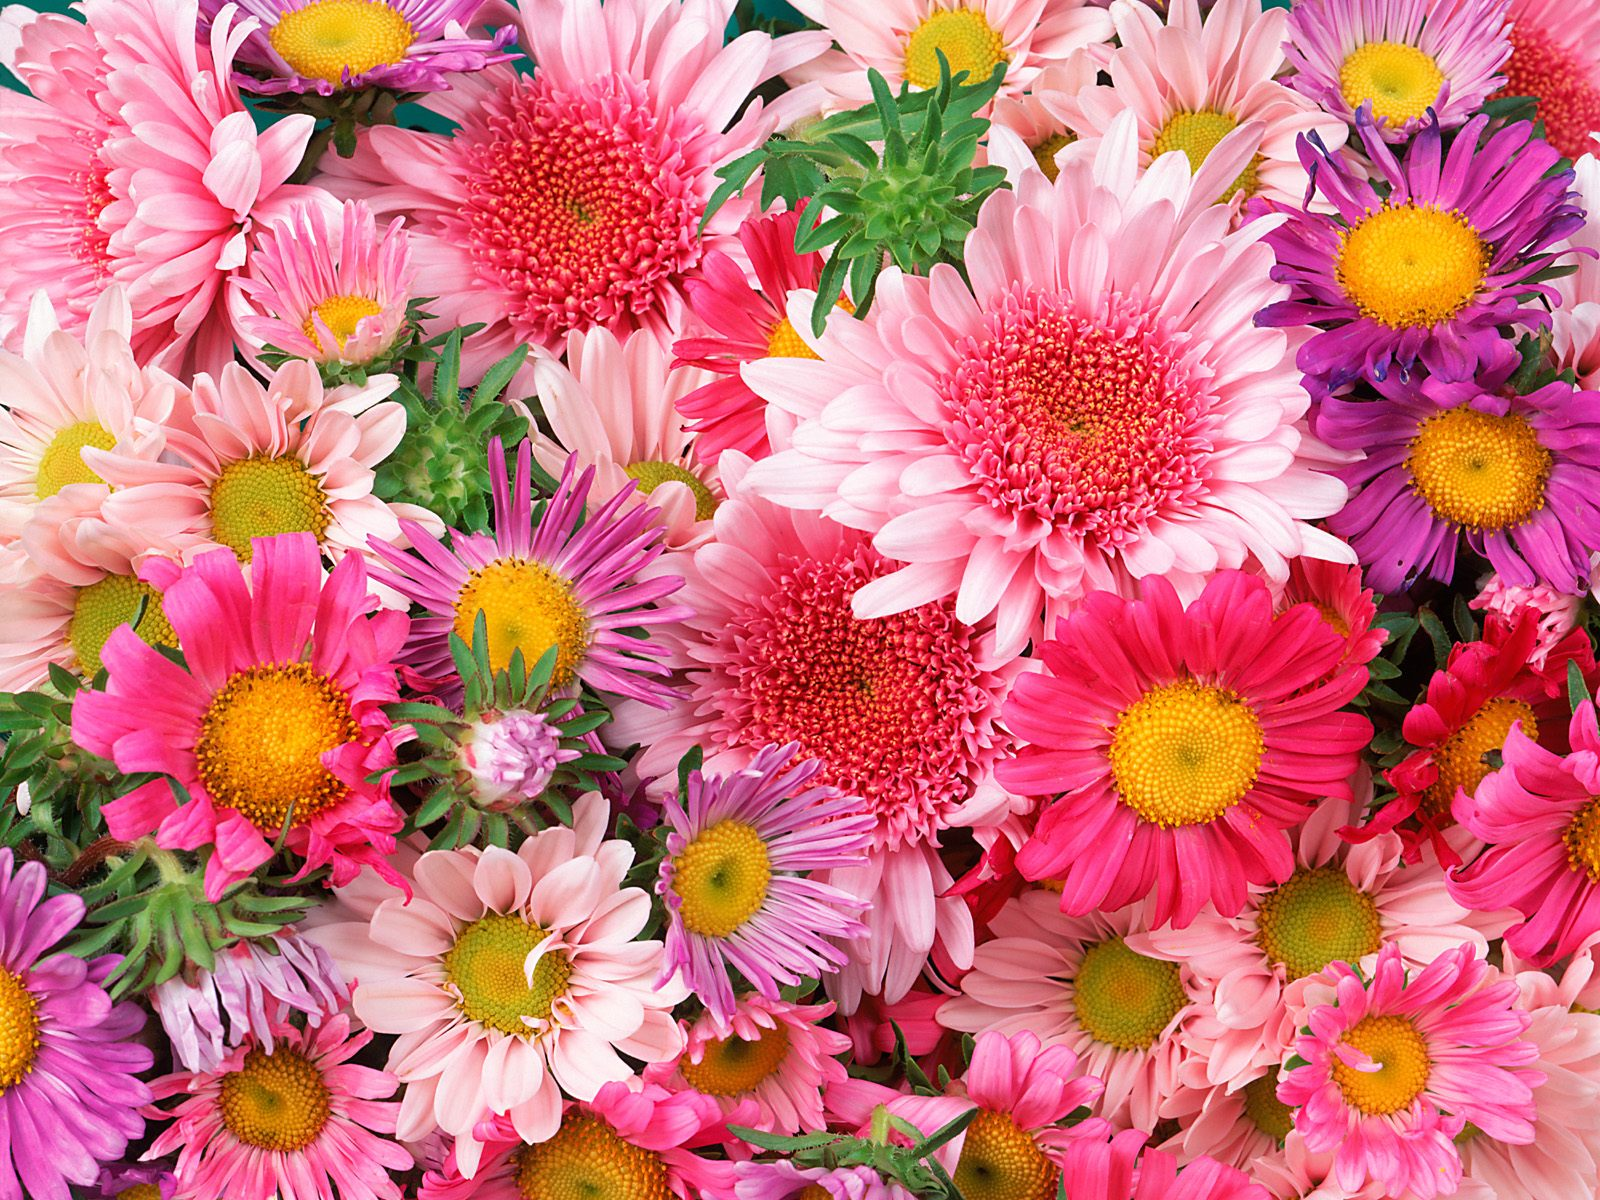 Download High quality Flowers Wallpaper Num 147 1600 x 1200 1600x1200